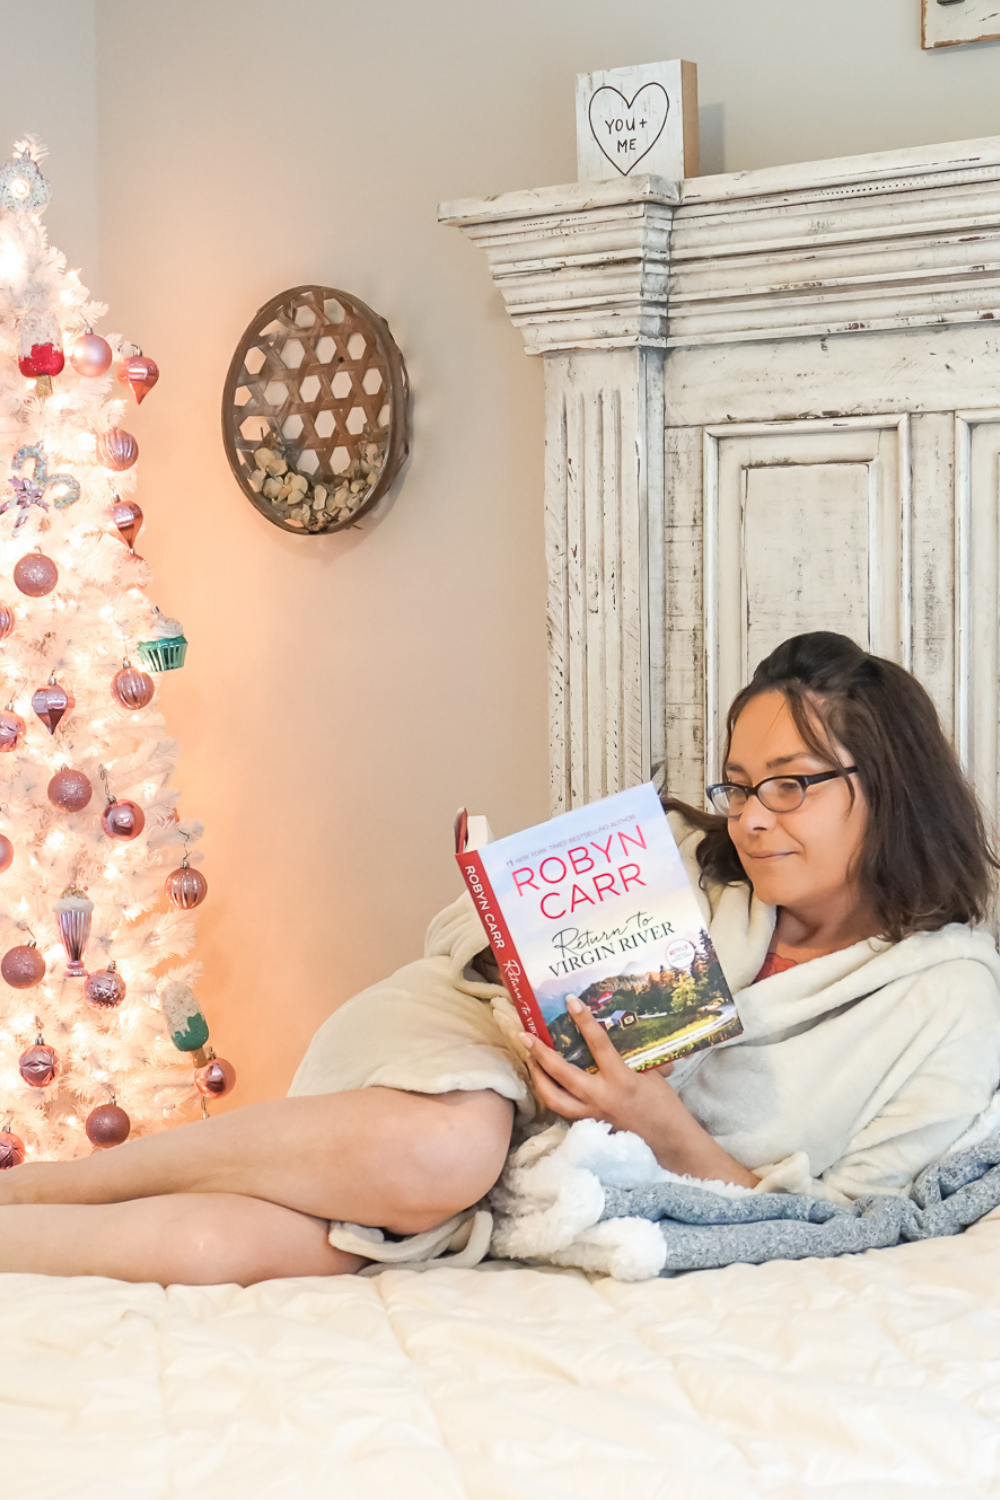 4 Amazing Books For Any Women This Holiday Season